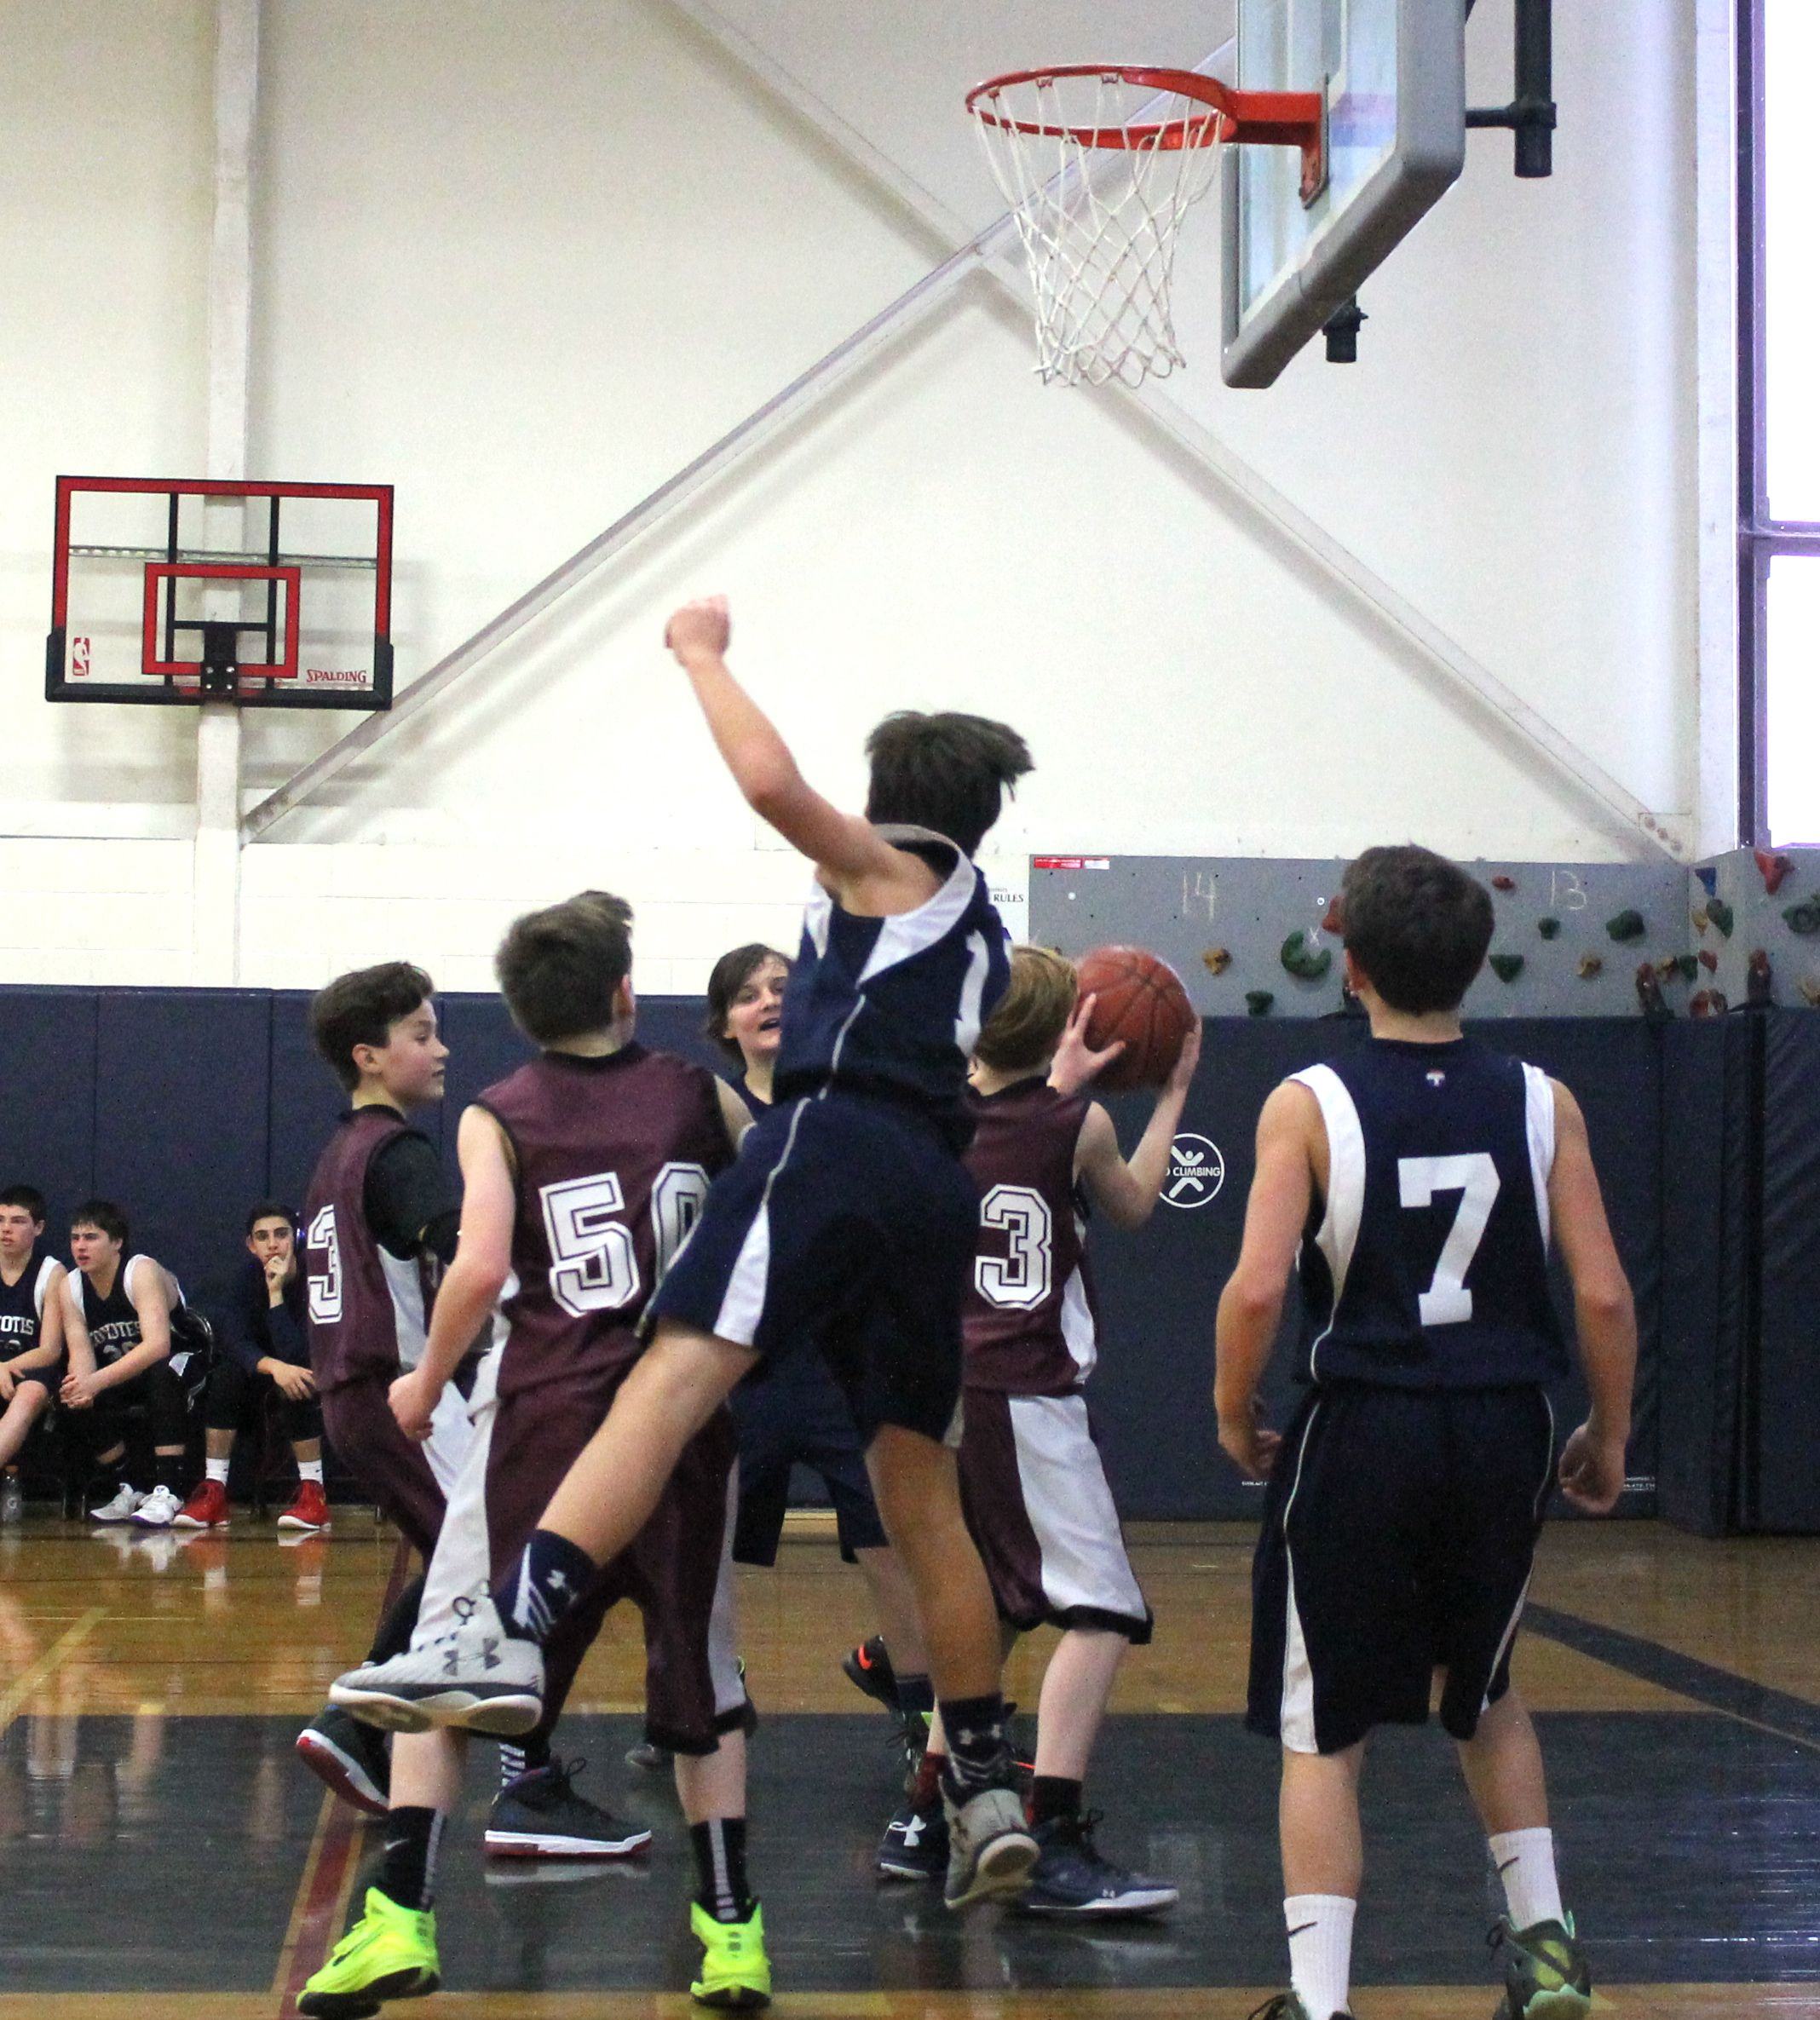 Boys' JV win over St. John's Physical education, School